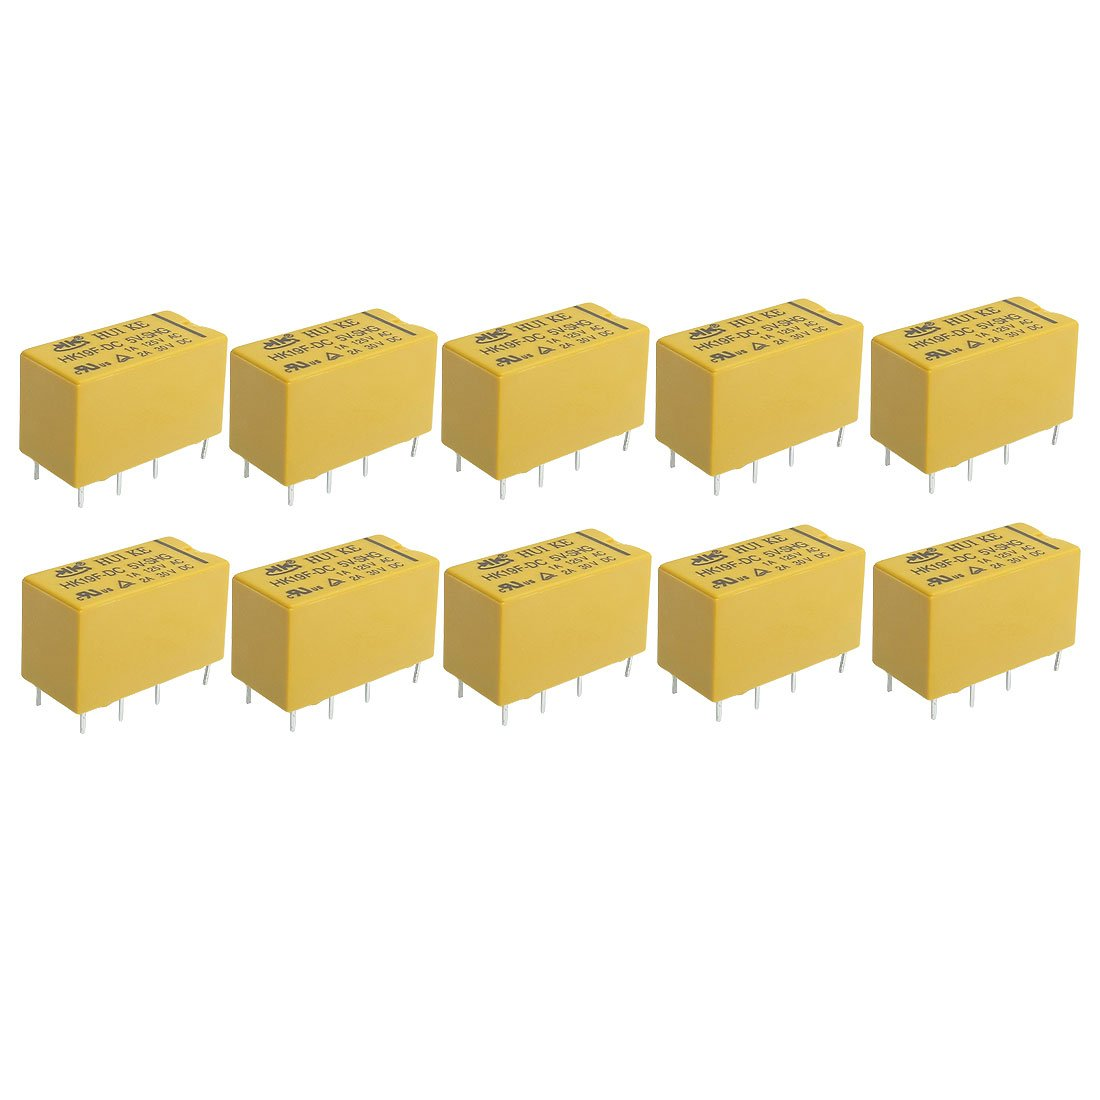 Uxcell 10 X Dc 5v Coil 8 Pins Dpdt Power Relay Hk19f Automotive Fire Inc Restaurant System Parts Ansulstyle Microswitch Accessory Relays